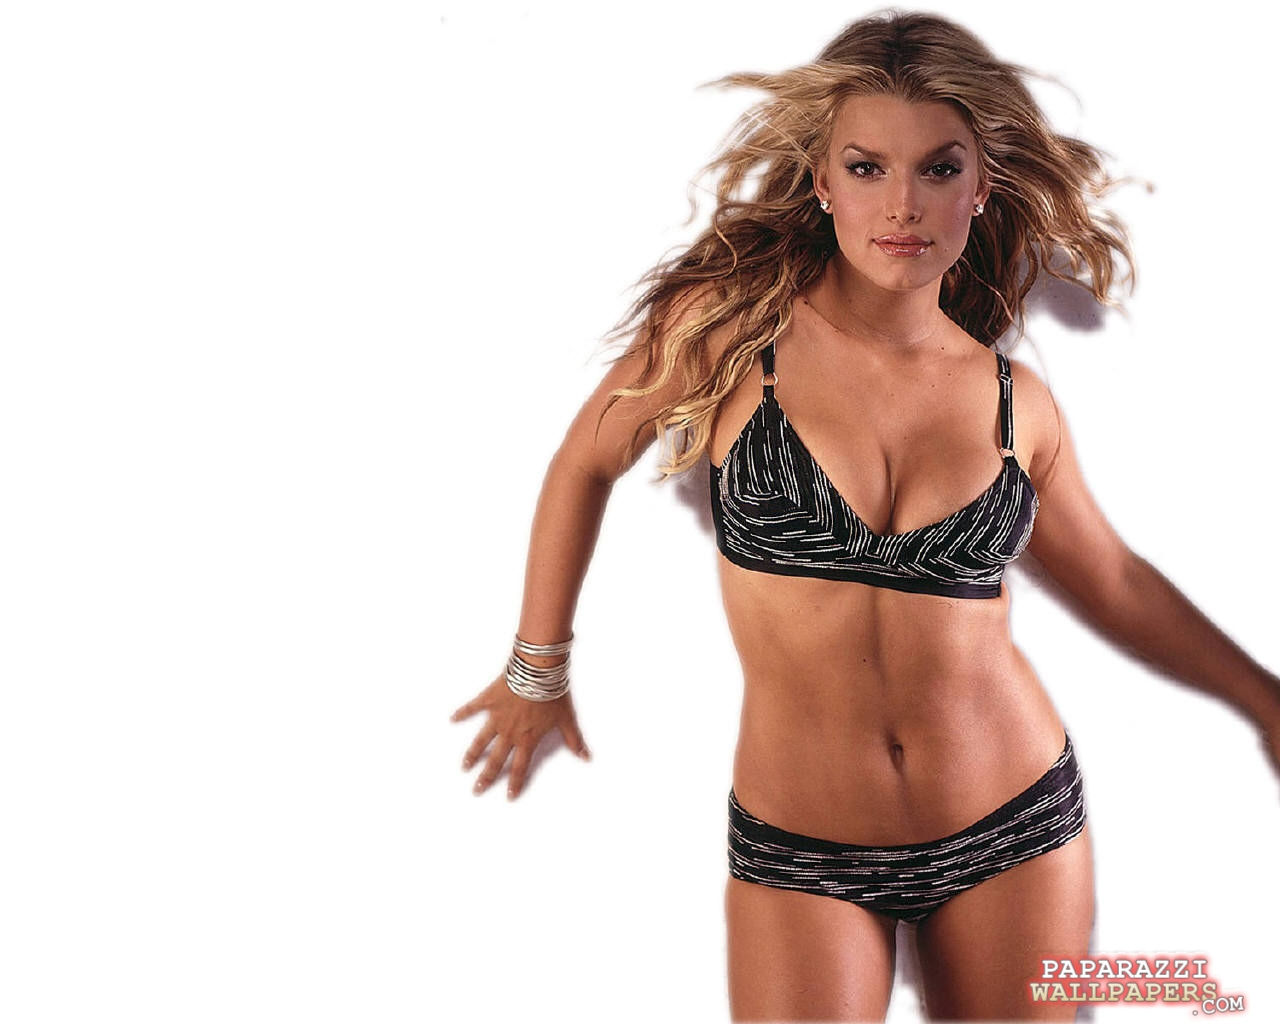 jessica simpson wallpapers 050